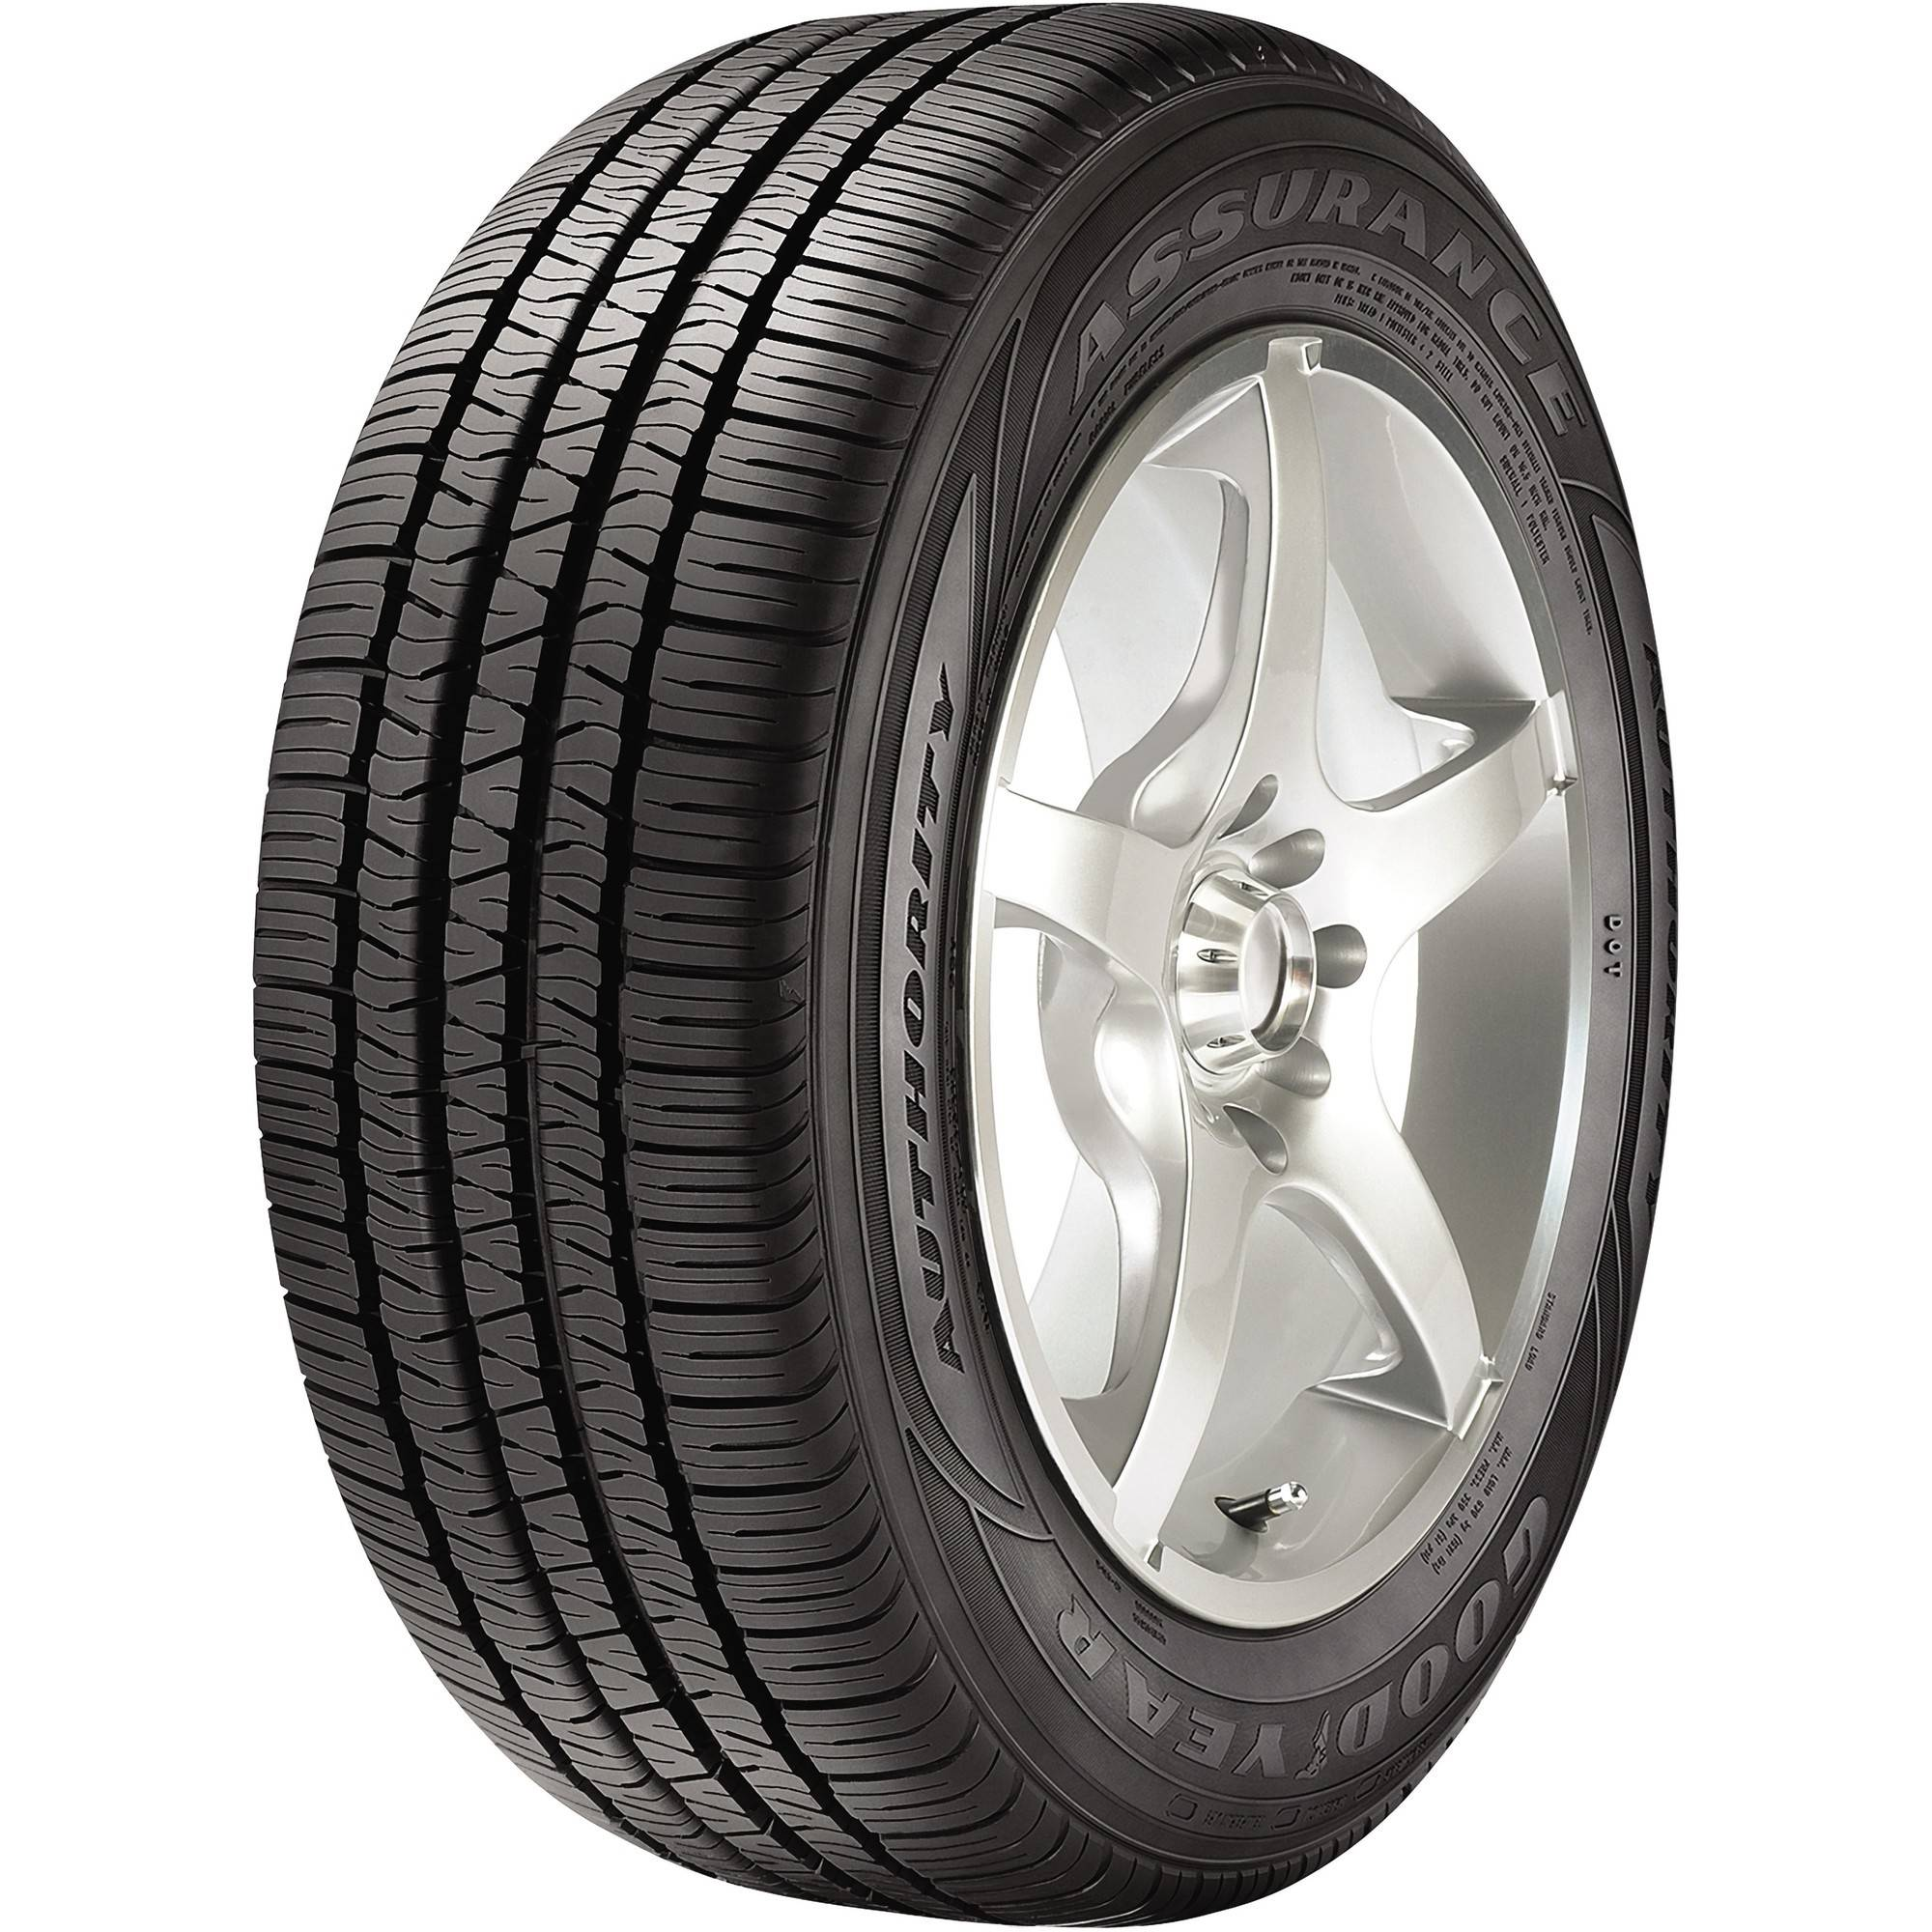 Goodyear Assurance Authority Tire 215/60R16  95V